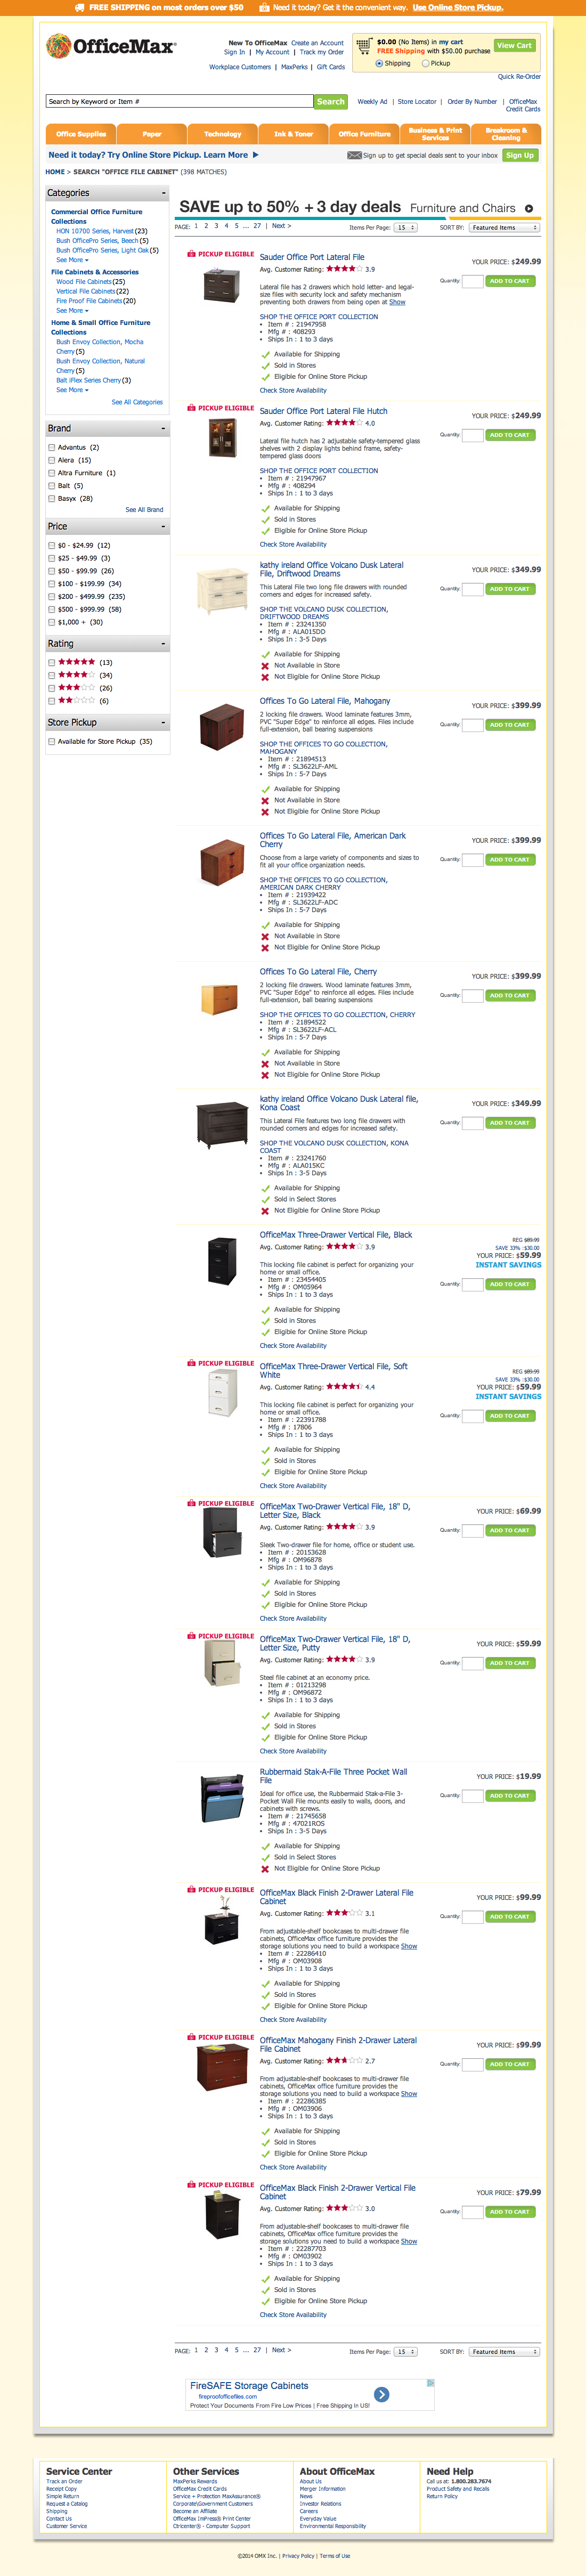 OfficeMax's Search Results Page